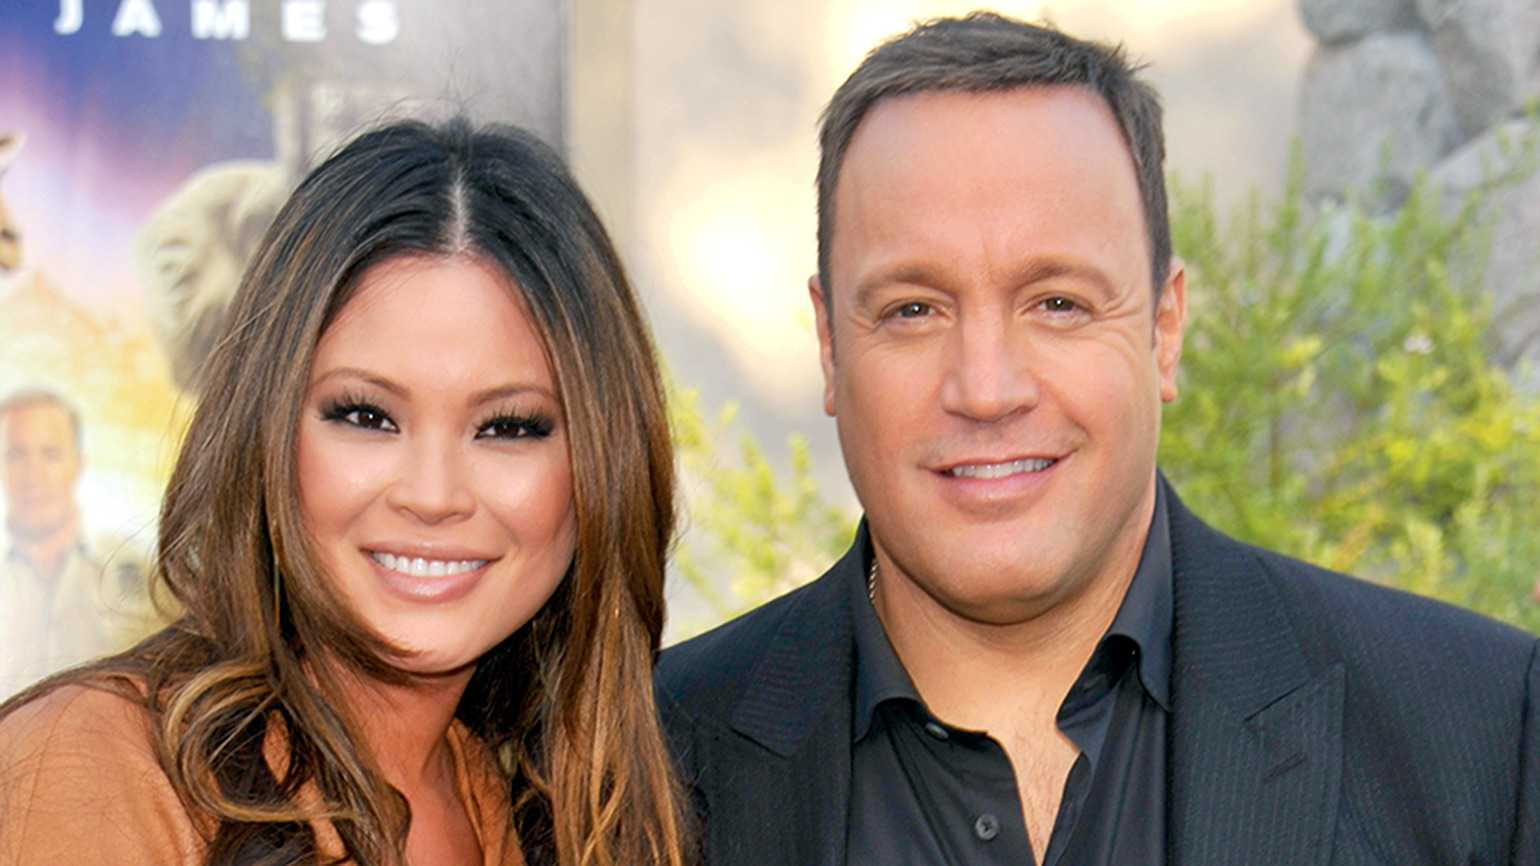 Kevin James with his wife, Steffiana